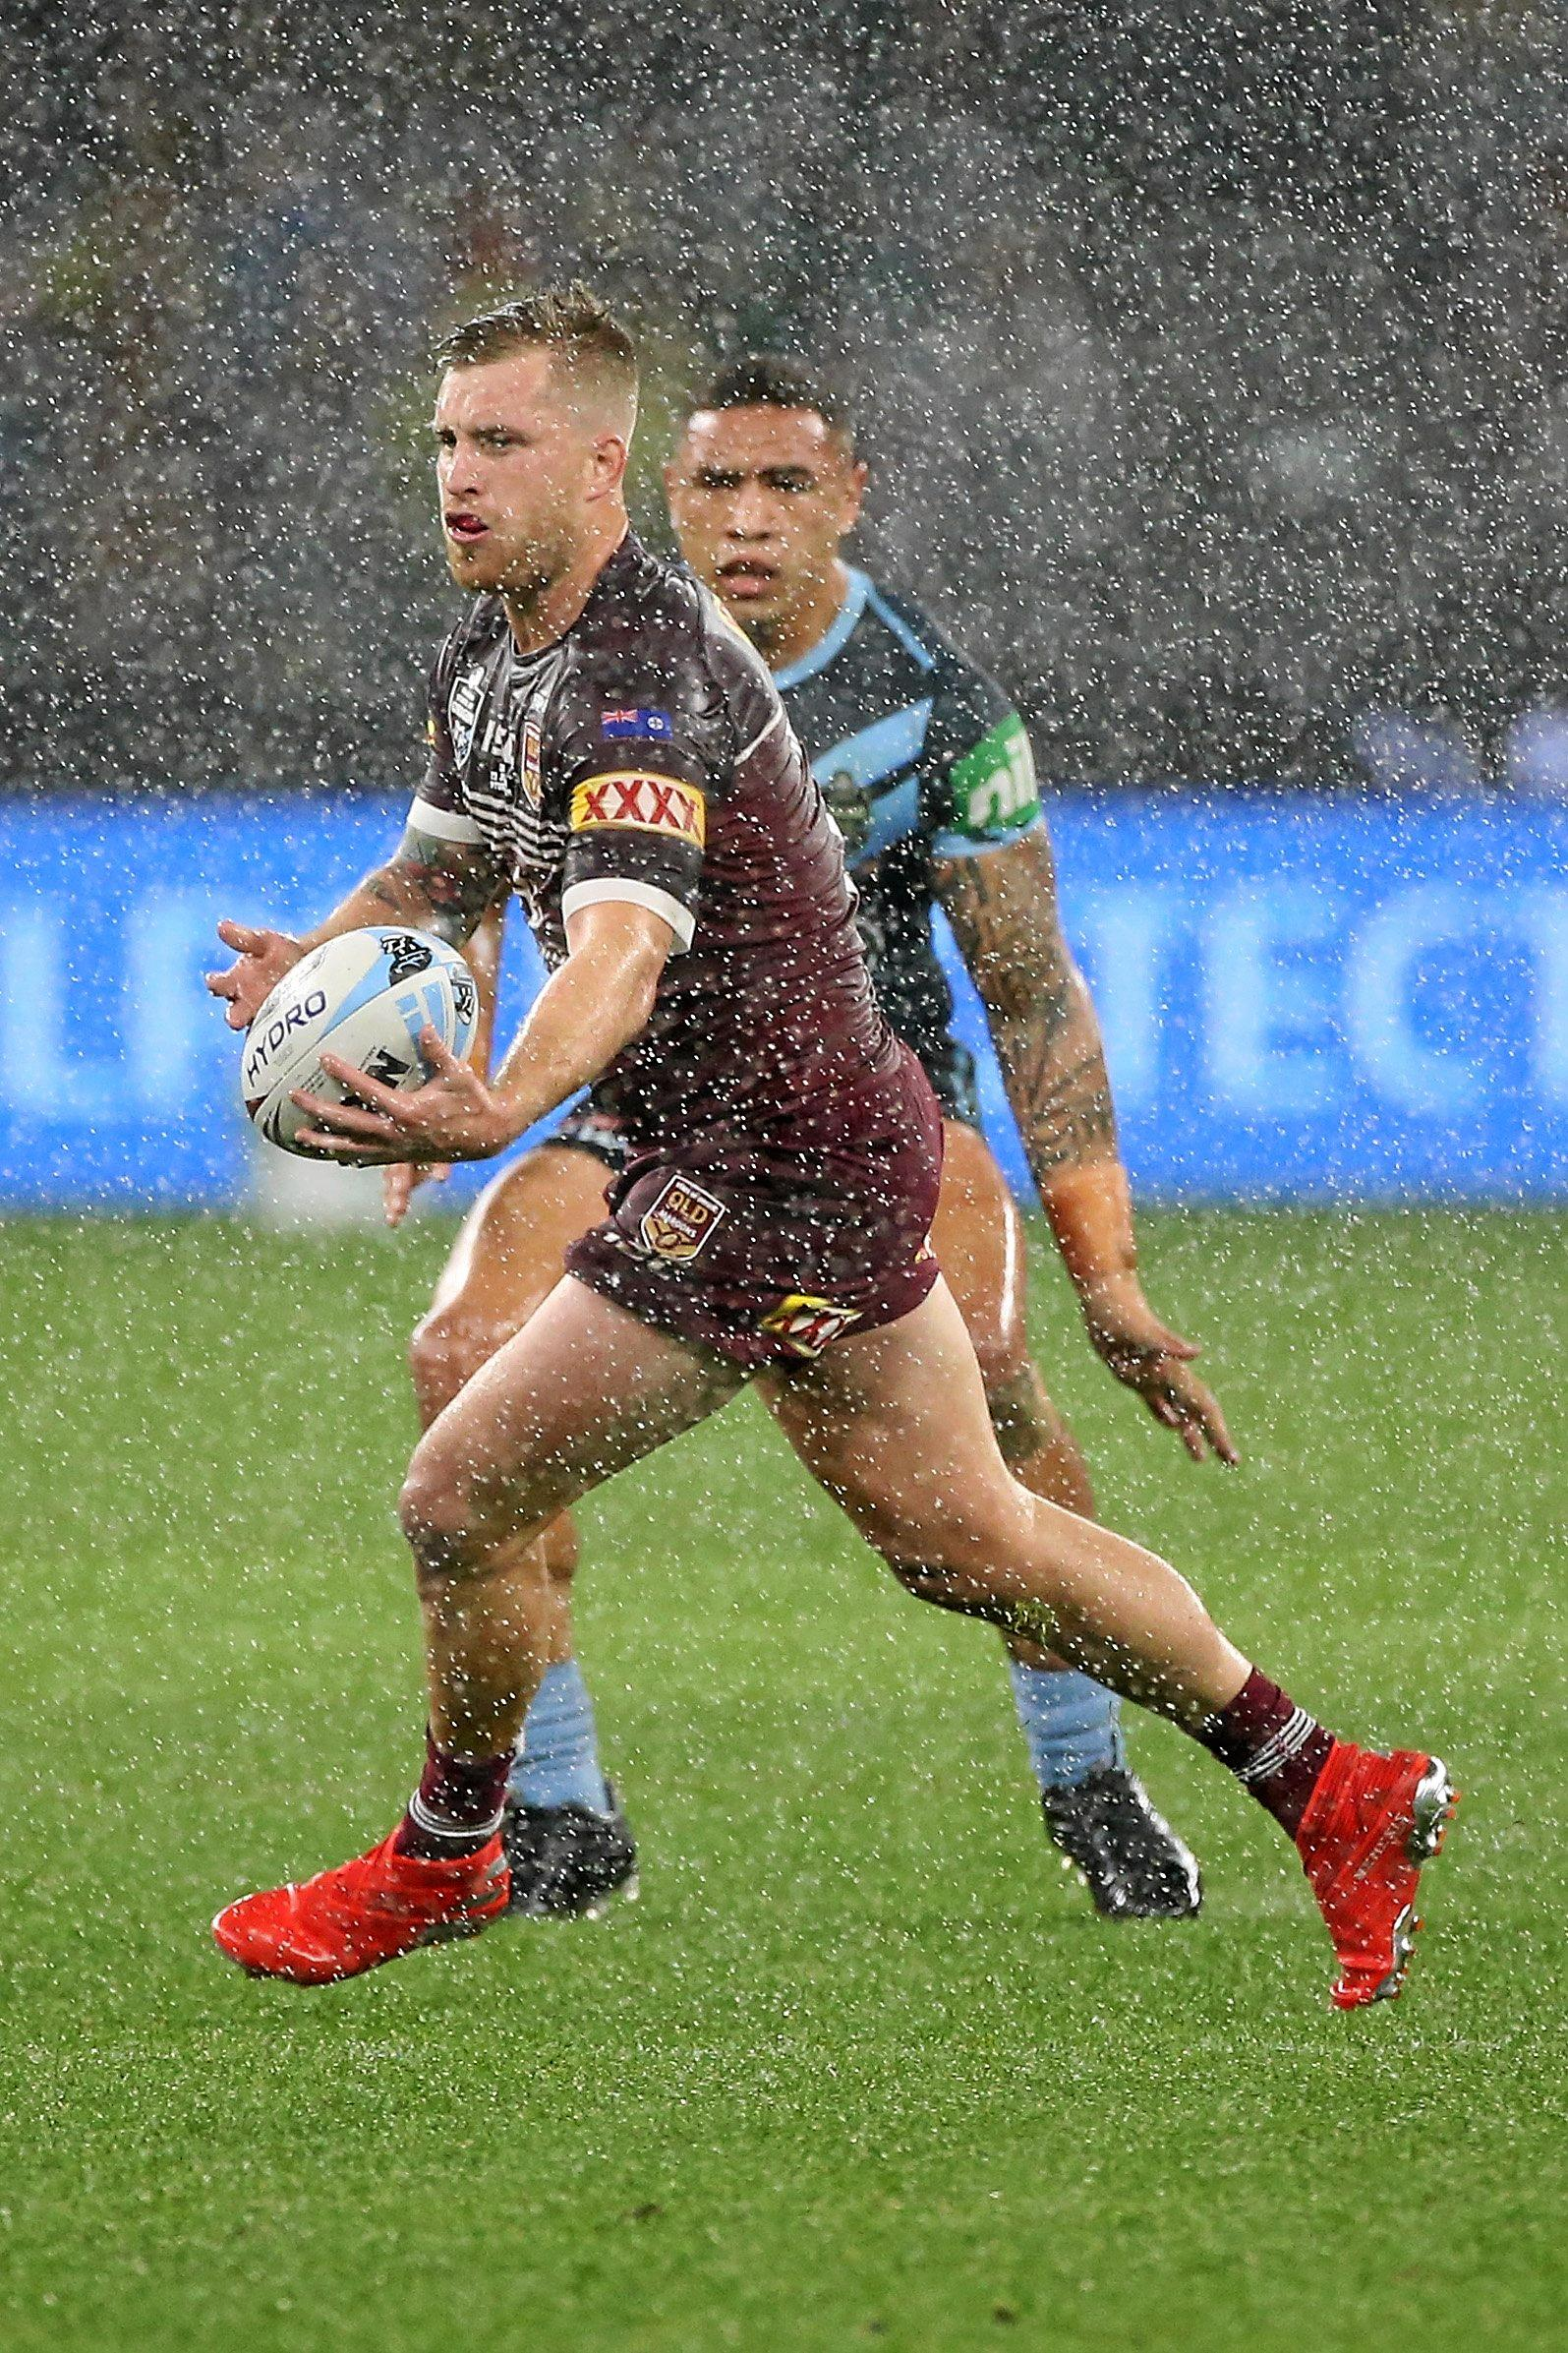 PERTH, AUSTRALIA - JUNE 23: Cameron Munster of Queensland looks to pass the ball during game two of the 2019 State of Origin series between the New South Wales Blues and the Queensland Maroons at Optus Stadium on June 23, 2019 in Perth, Australia. (Photo by Paul Kane/Getty Images)